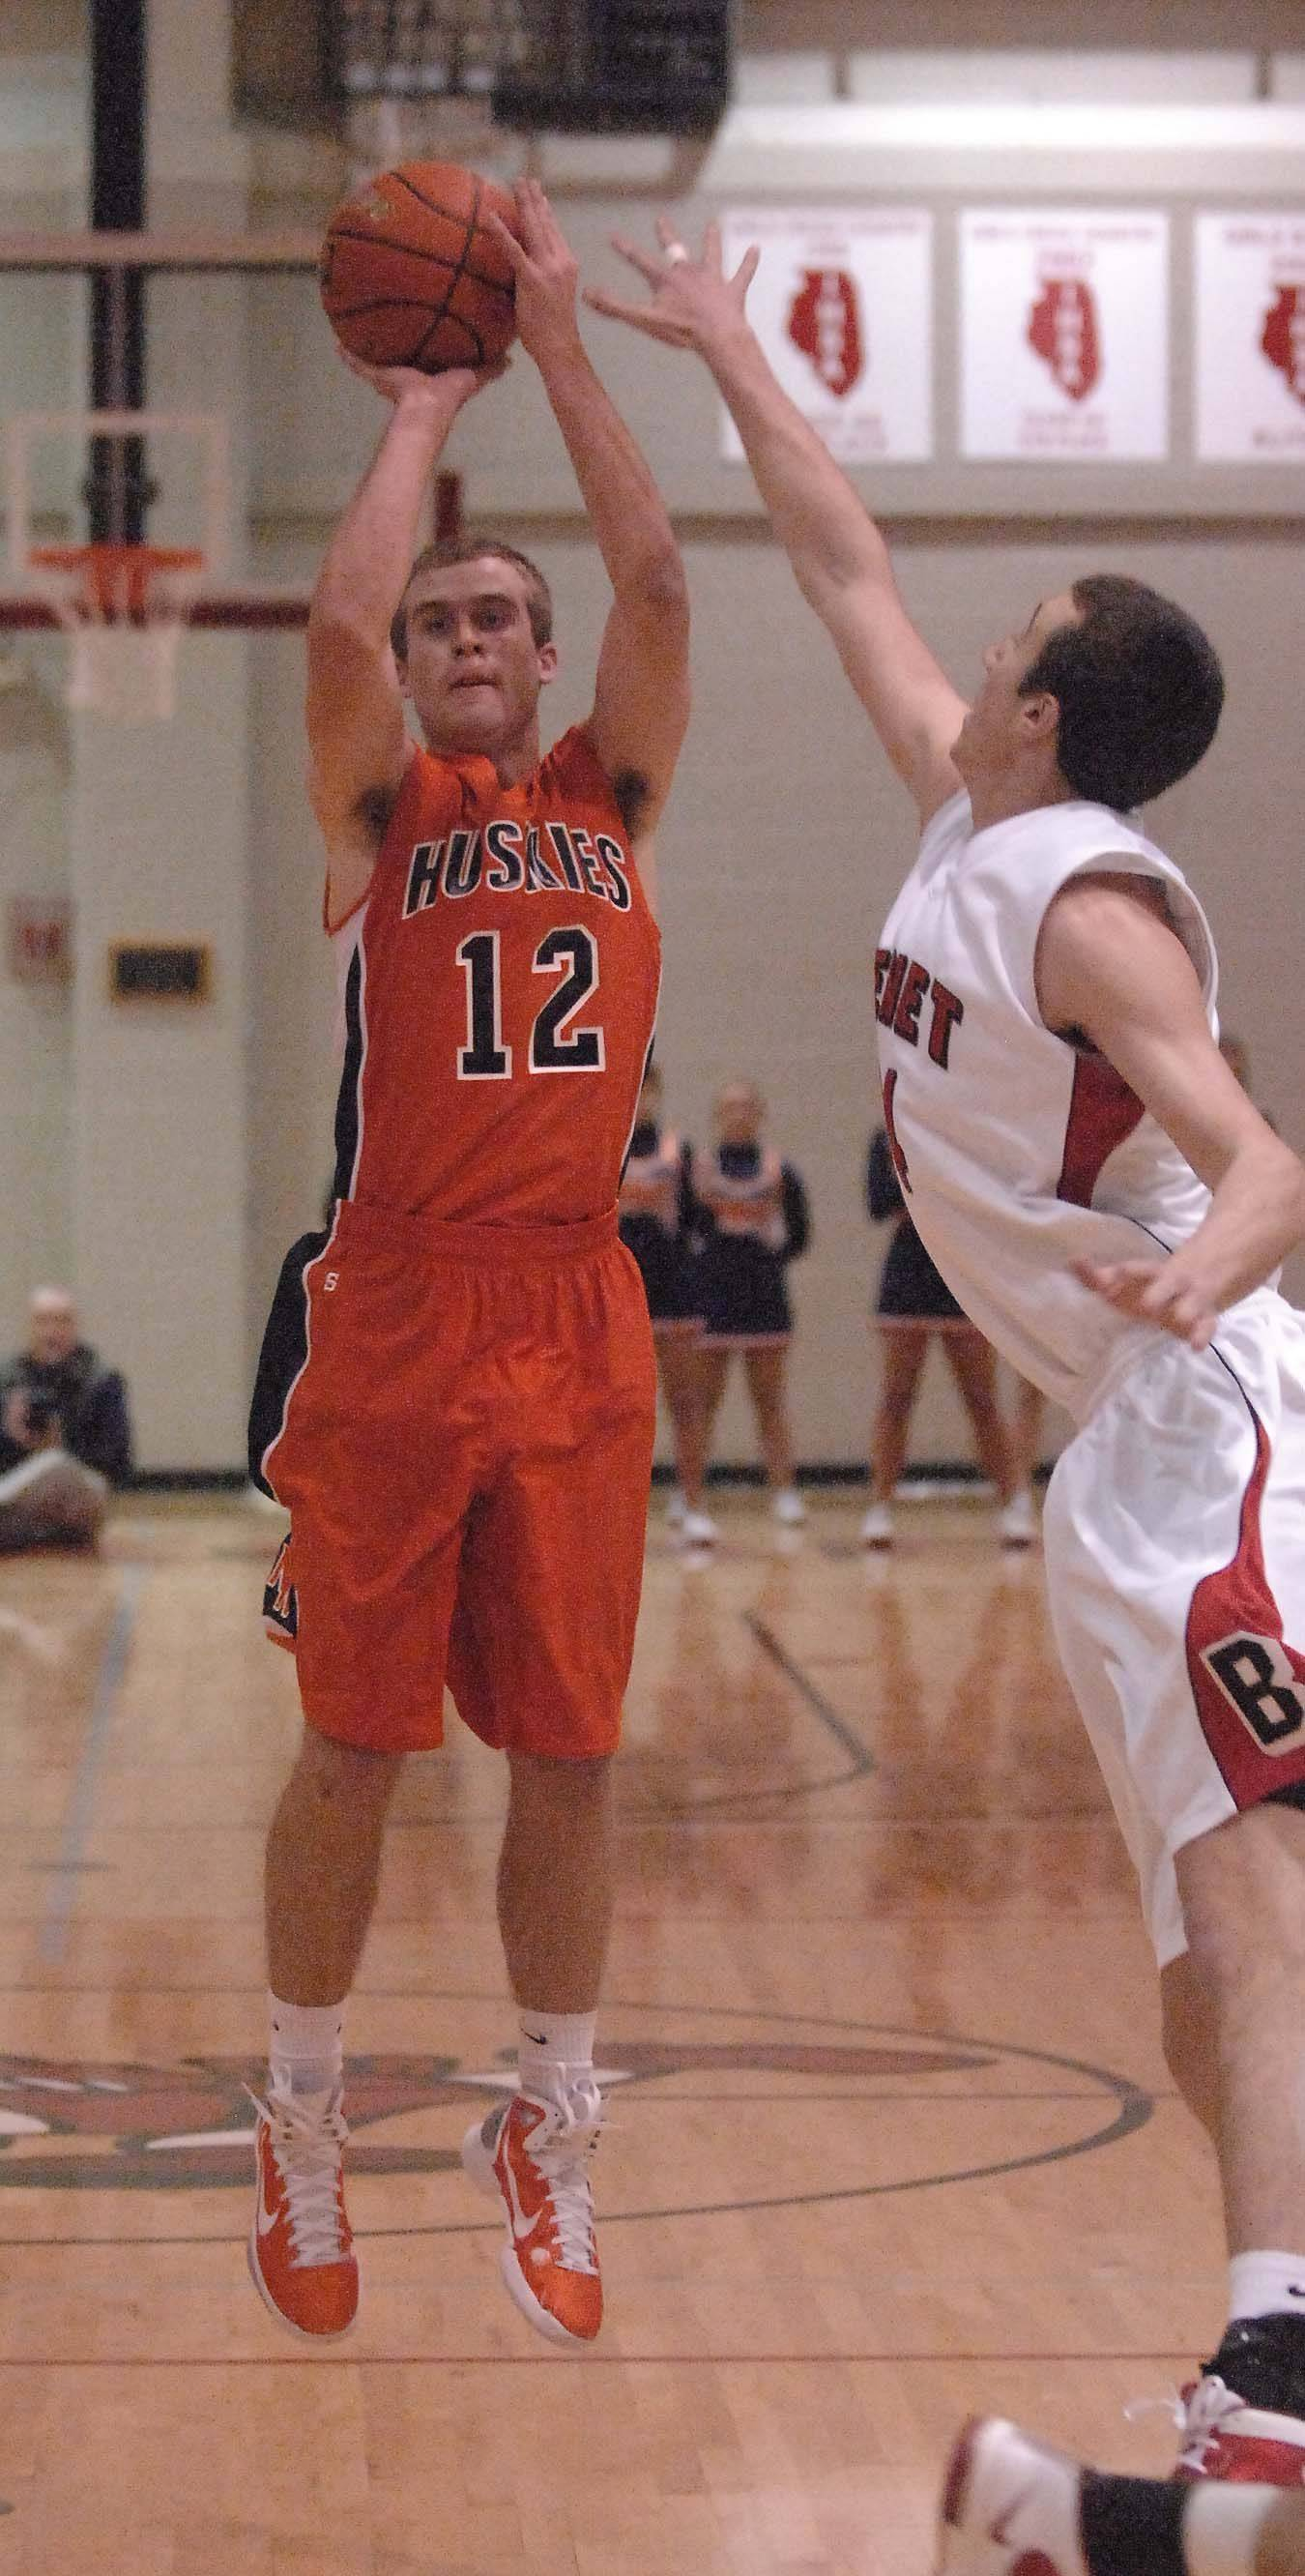 PAUL MICHNA/Pmichna@dailyherald.comNick Buege of Naperville Noth puts up a shot during the Naperville North vs. Benet boys basketball game in Lisle Tuesday.